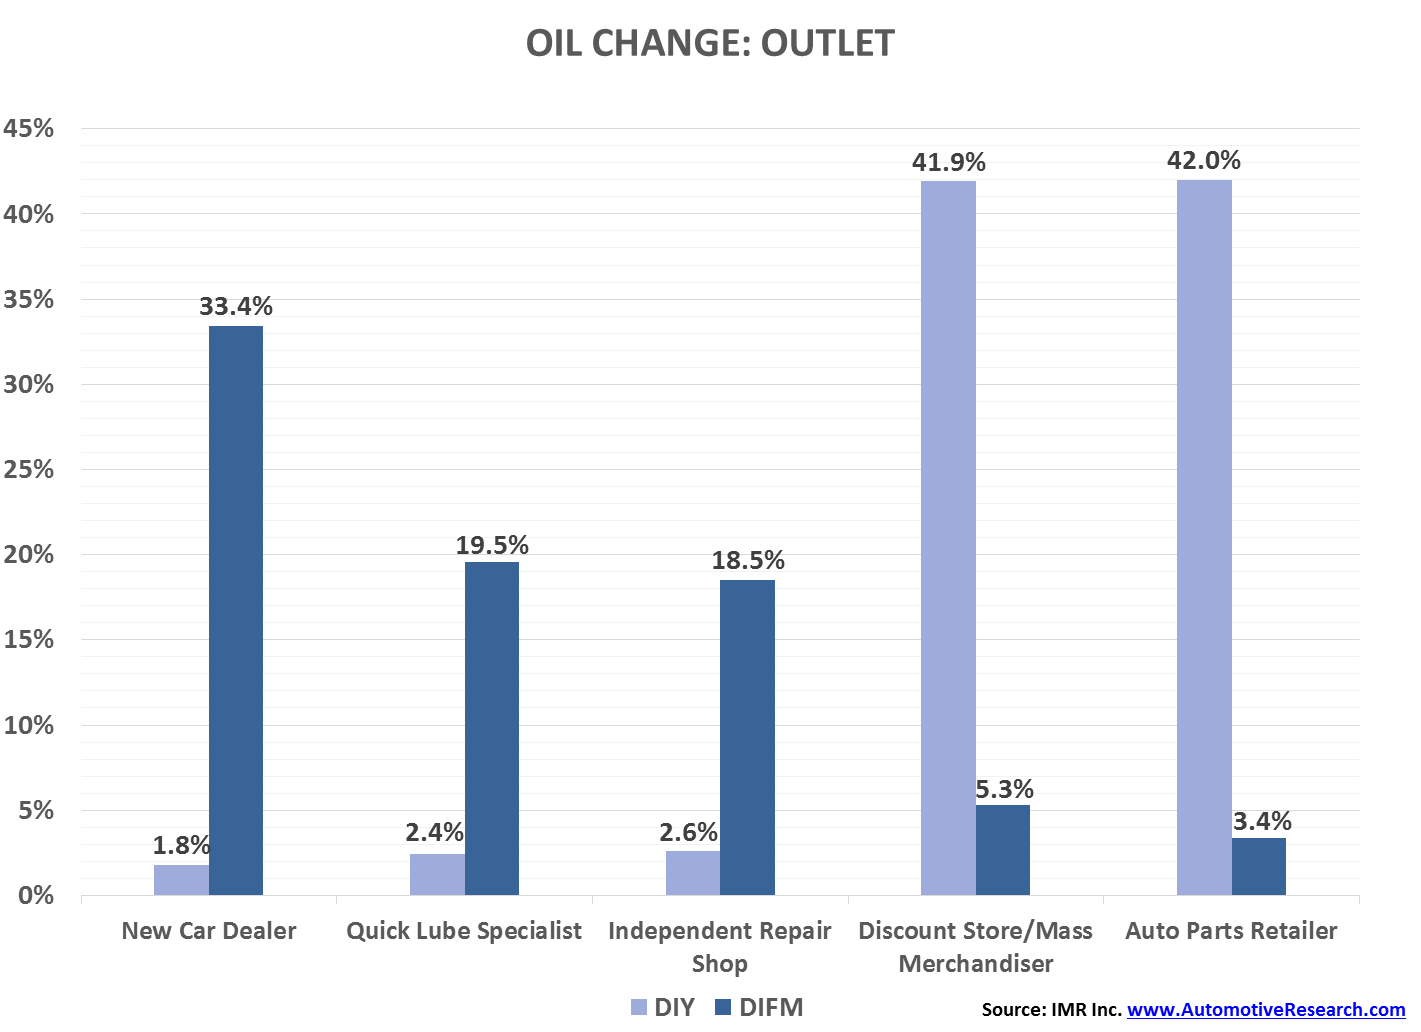 IMR Oil Change--Outlet